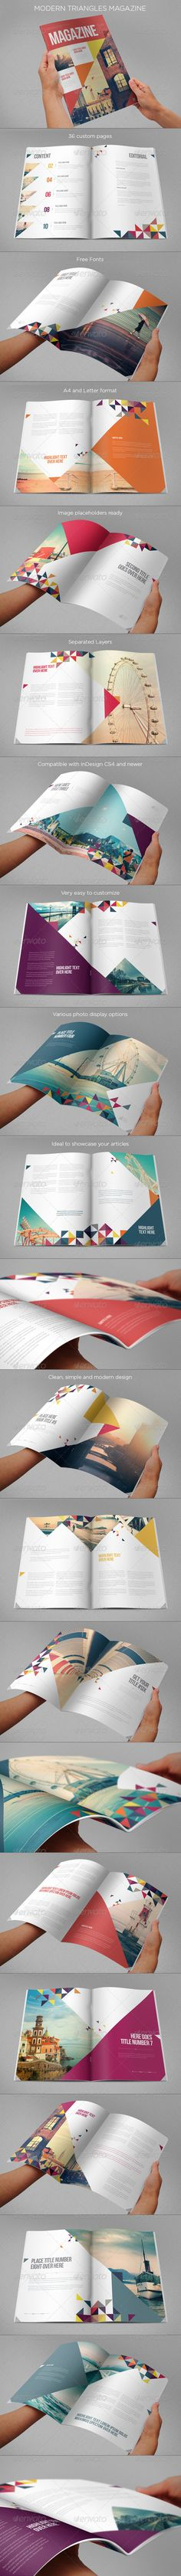 Modern Triangles Magazine Magazines Print Templates in Layout